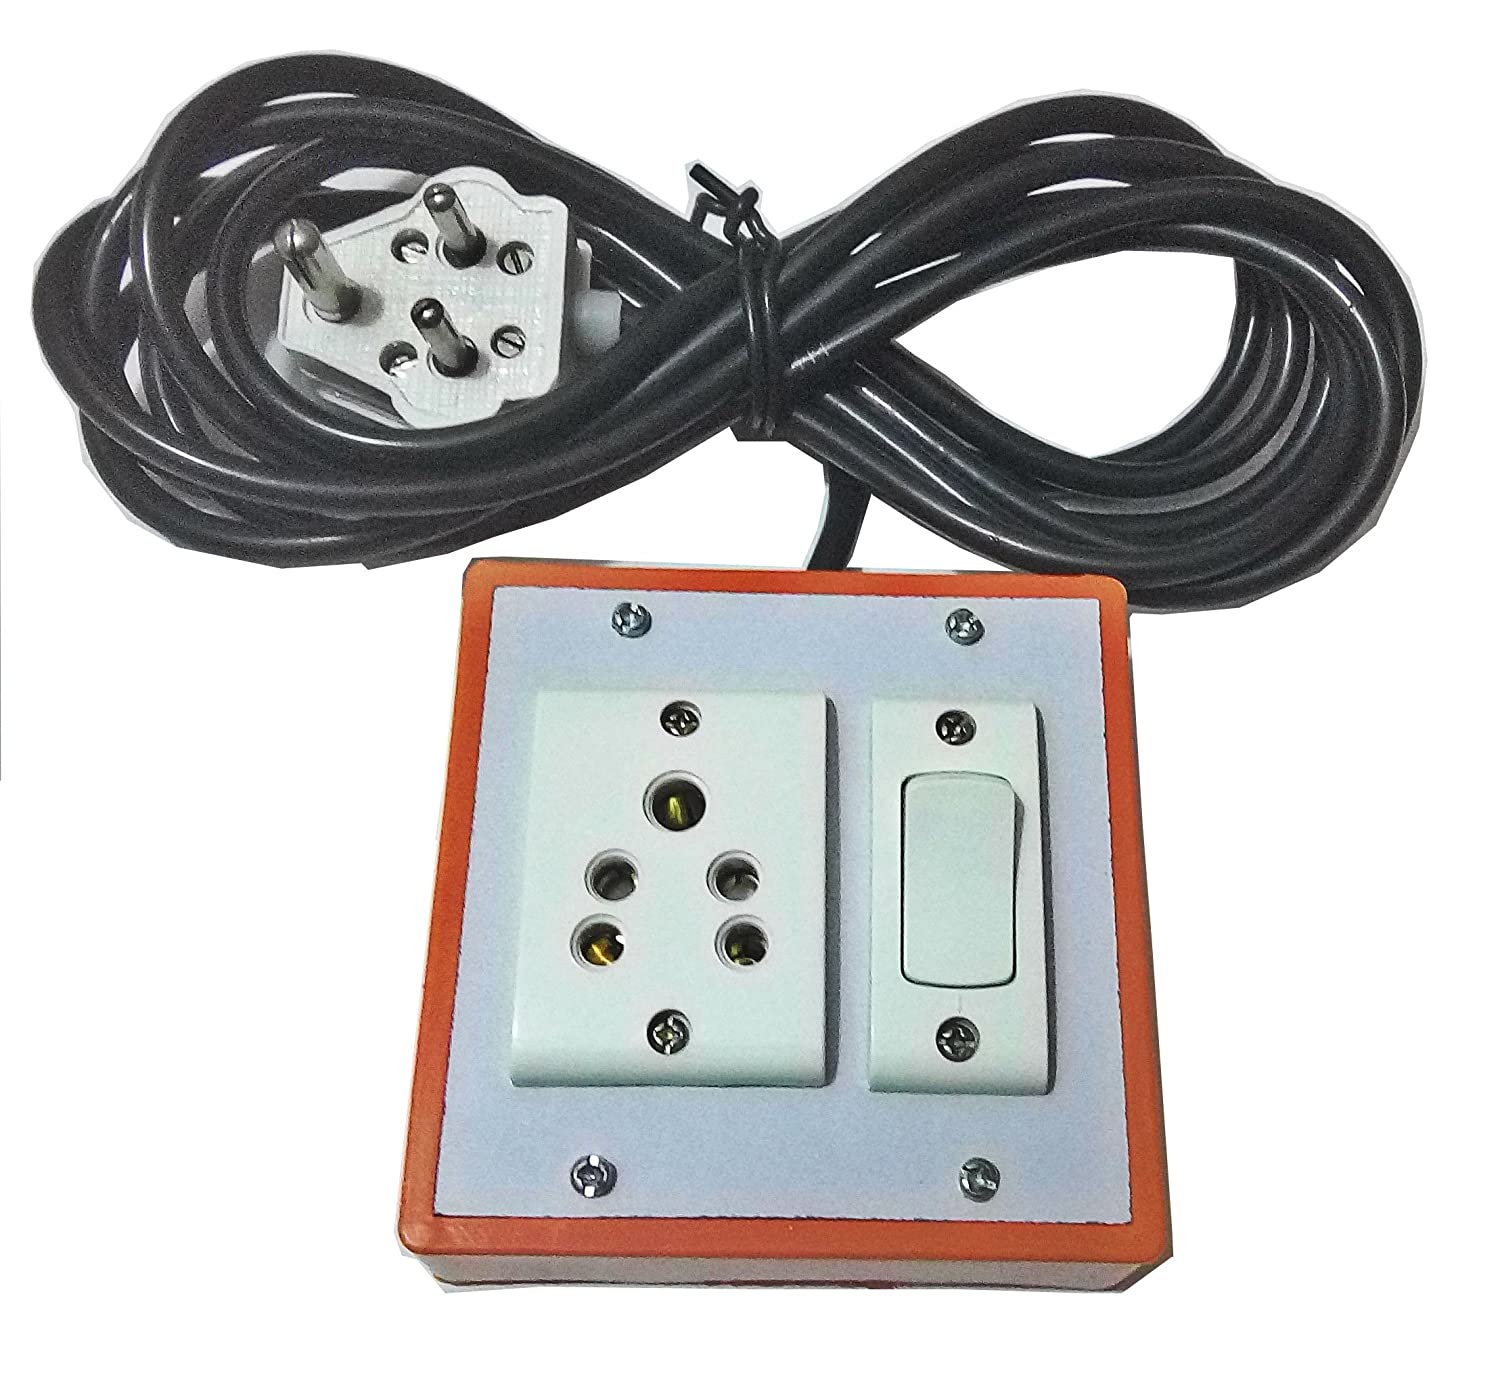 Srelectricals Spike Buster Electrical Extension Board 6amp With 1 Wiring Cord To Switch Socket Pvc 3 Mtr Core Cable Home